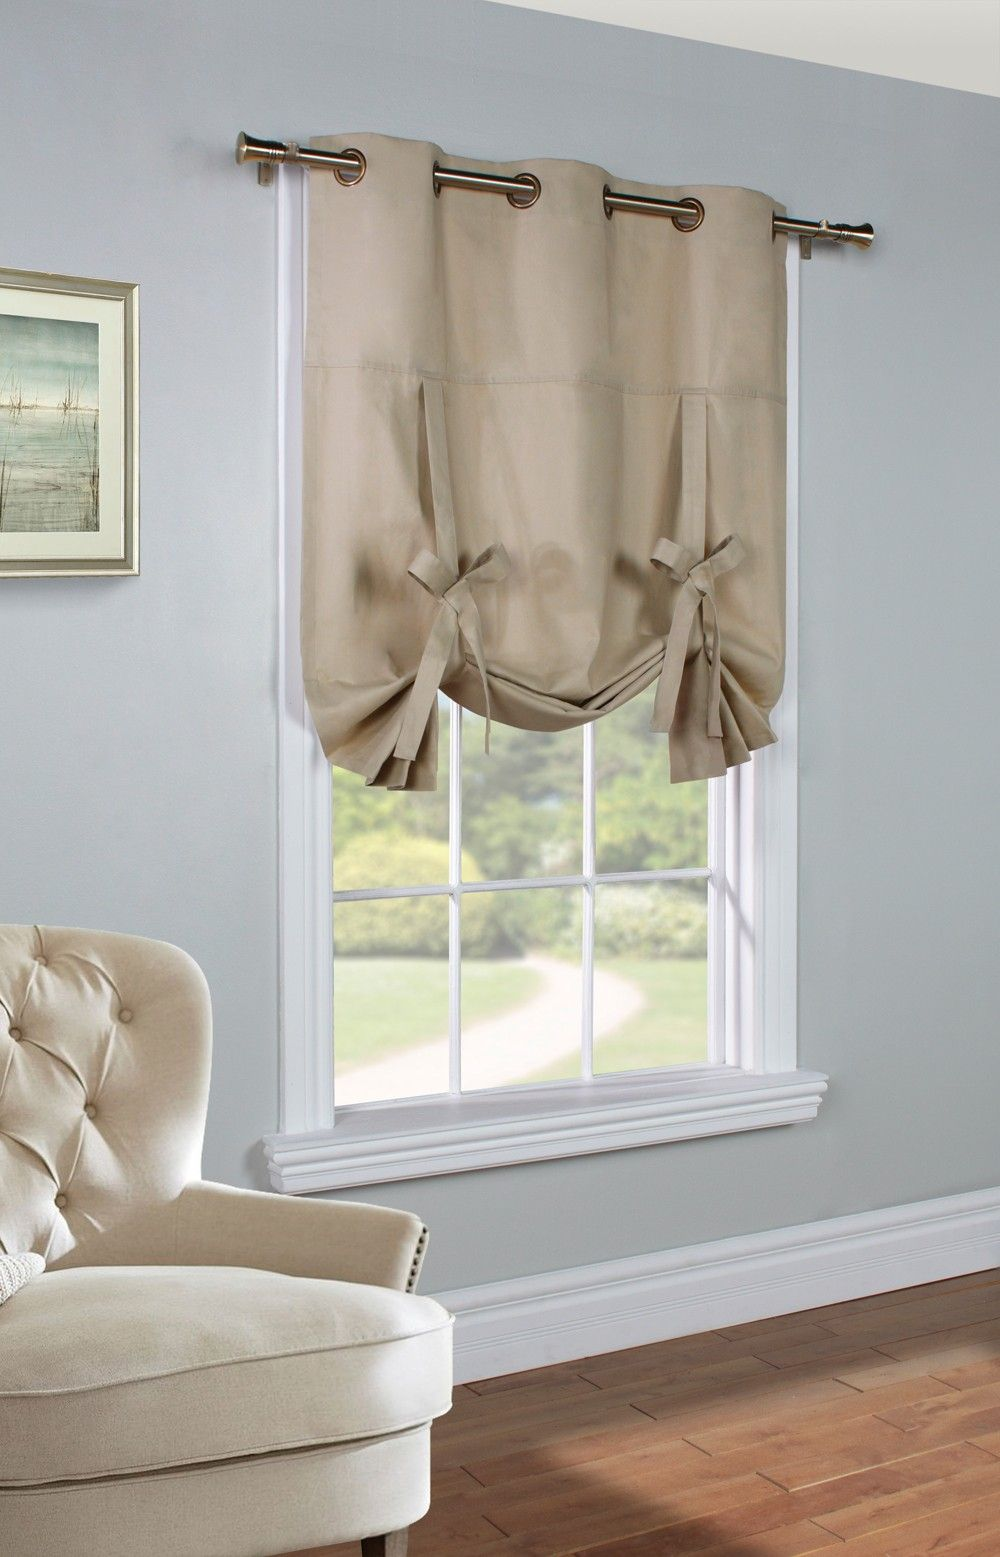 the ticking looks feelings perfect create curtains a to design tie charming stripes window with nature amount love in five of watercolor antique and balloon decor s simple fall valance it up